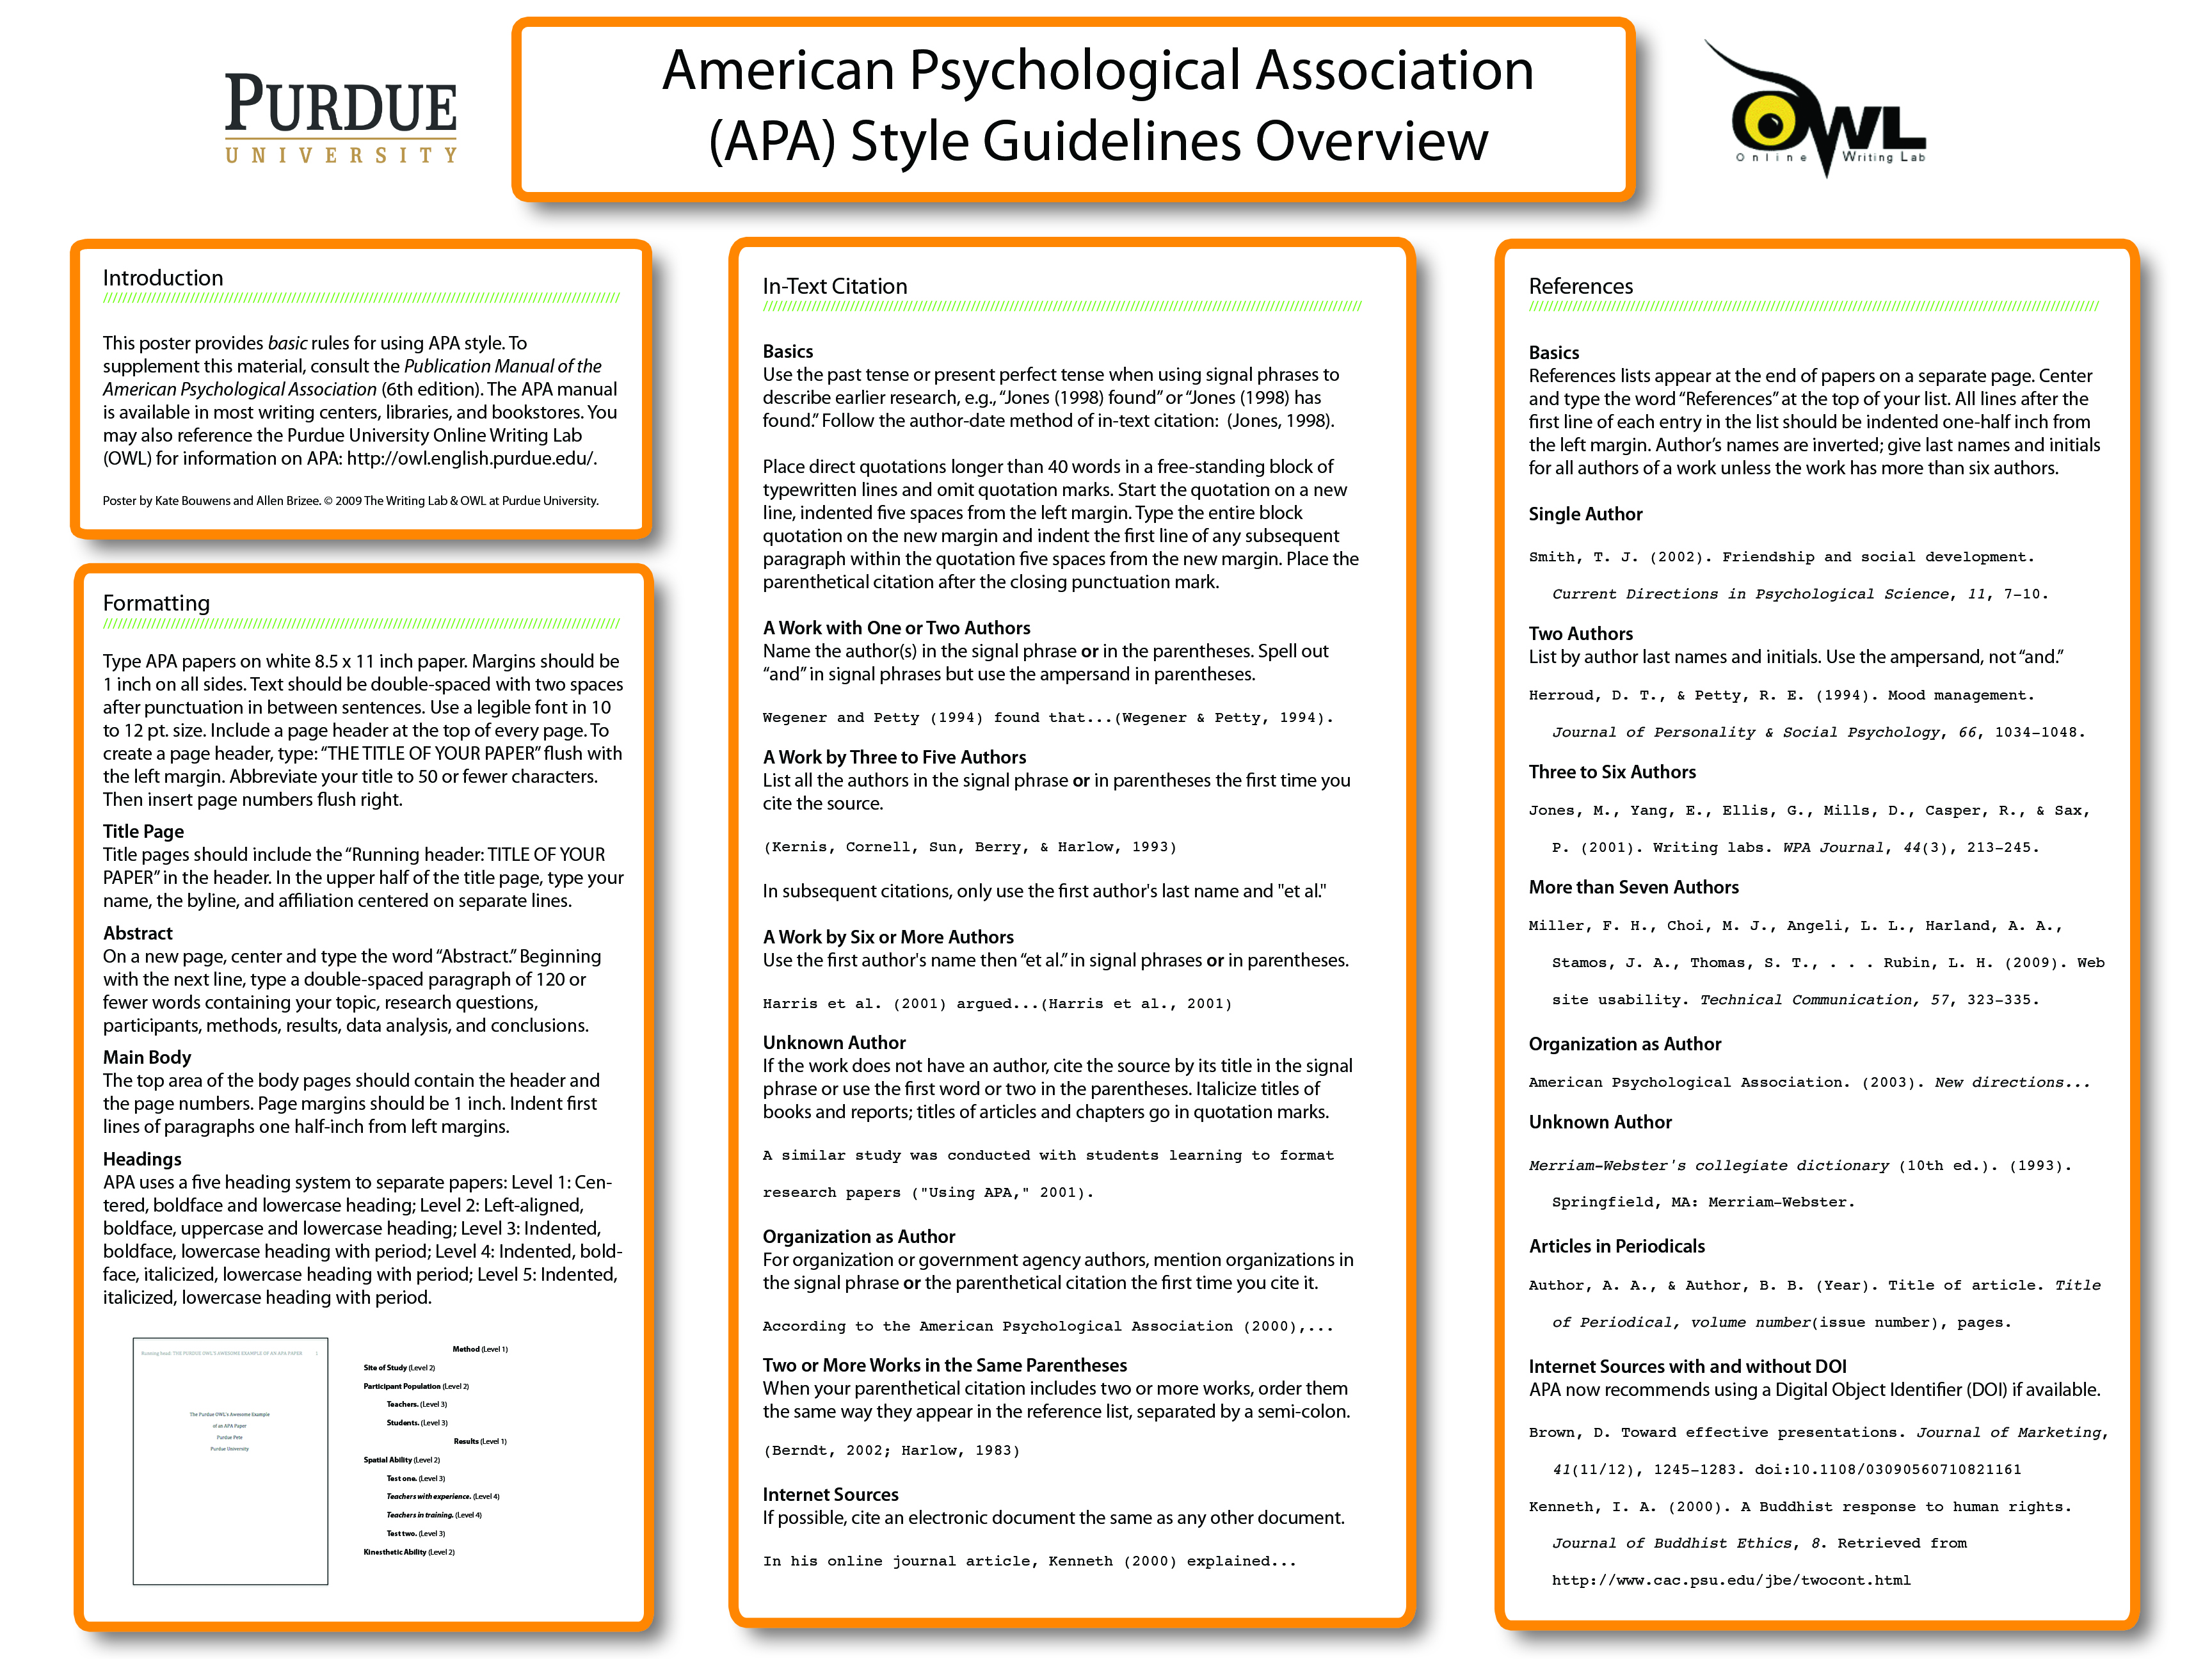 006 Apa Research Paper Citation Awful Example Sample With Website Citations Format Full